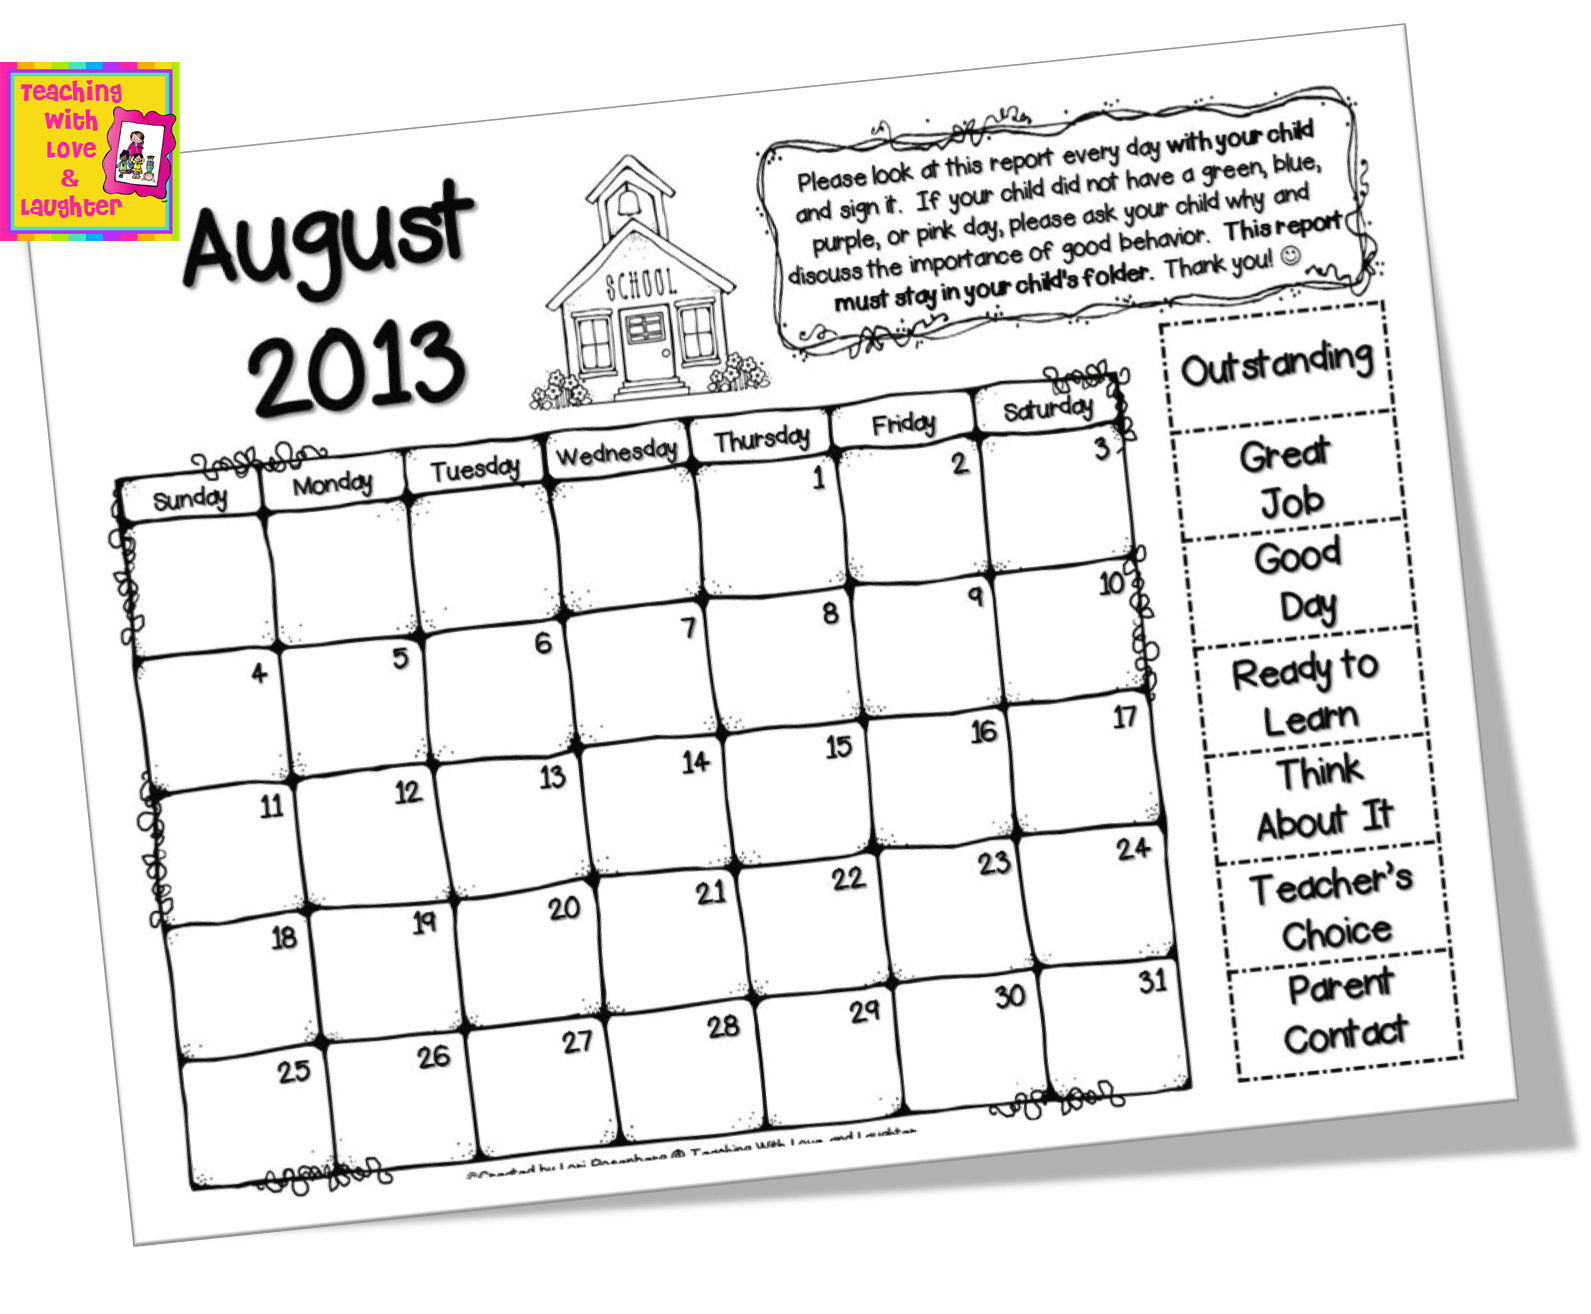 Teaching With Love and Laughter: Clip Chart Calendars for